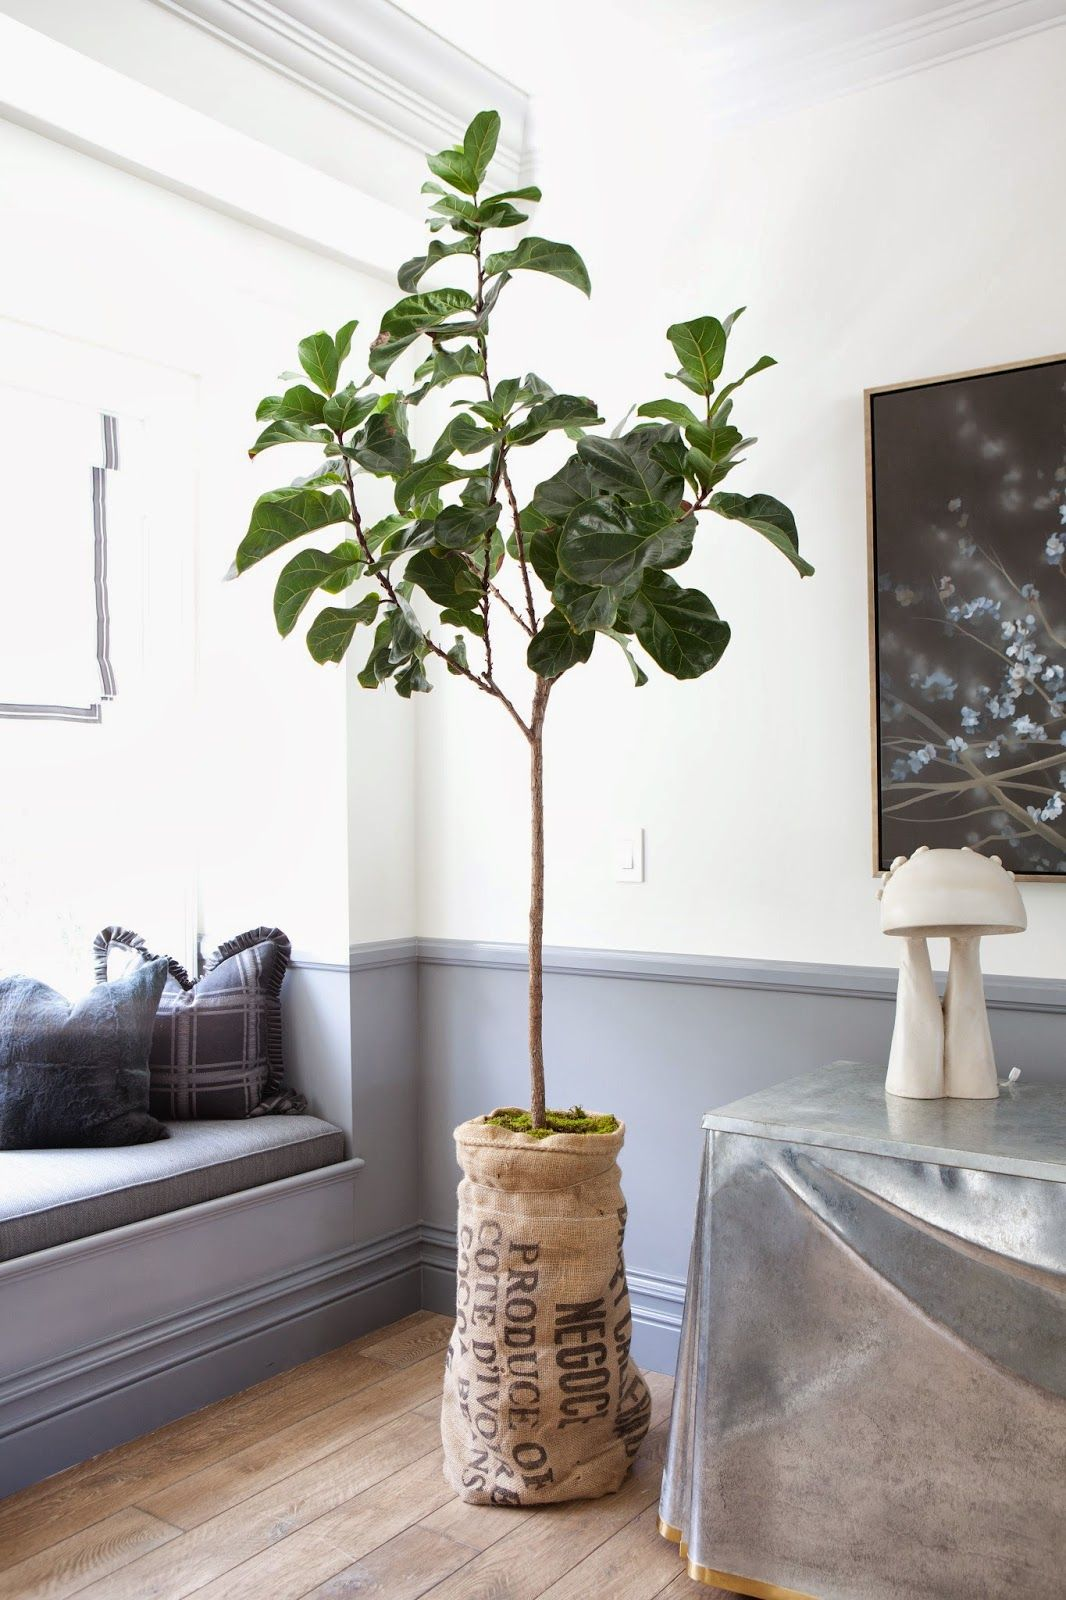 greige: interior design ideas and inspiration for the transitional home : Molly Wood Garden Design {spring sale}